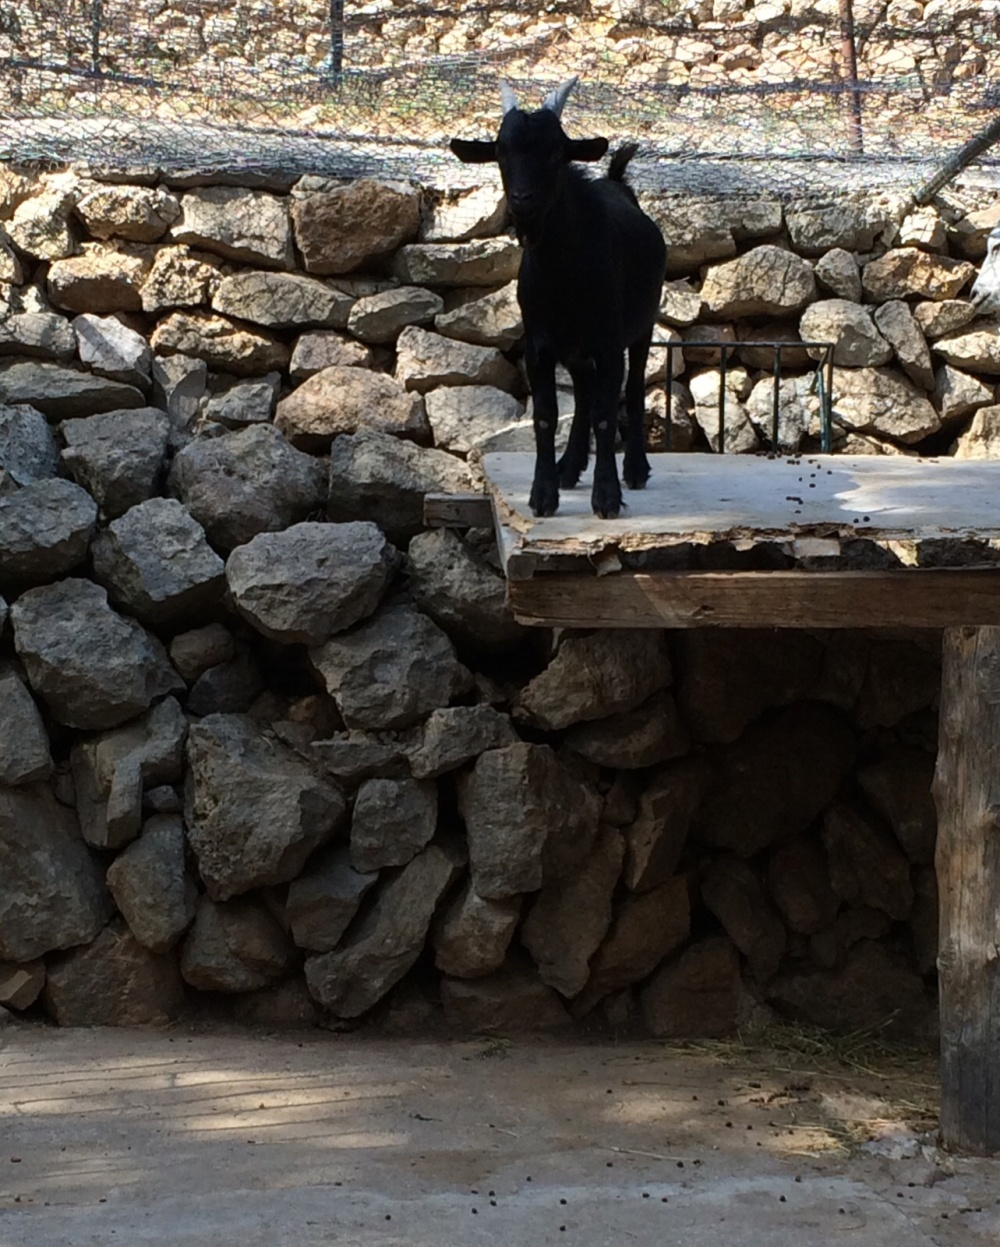 goat on roof